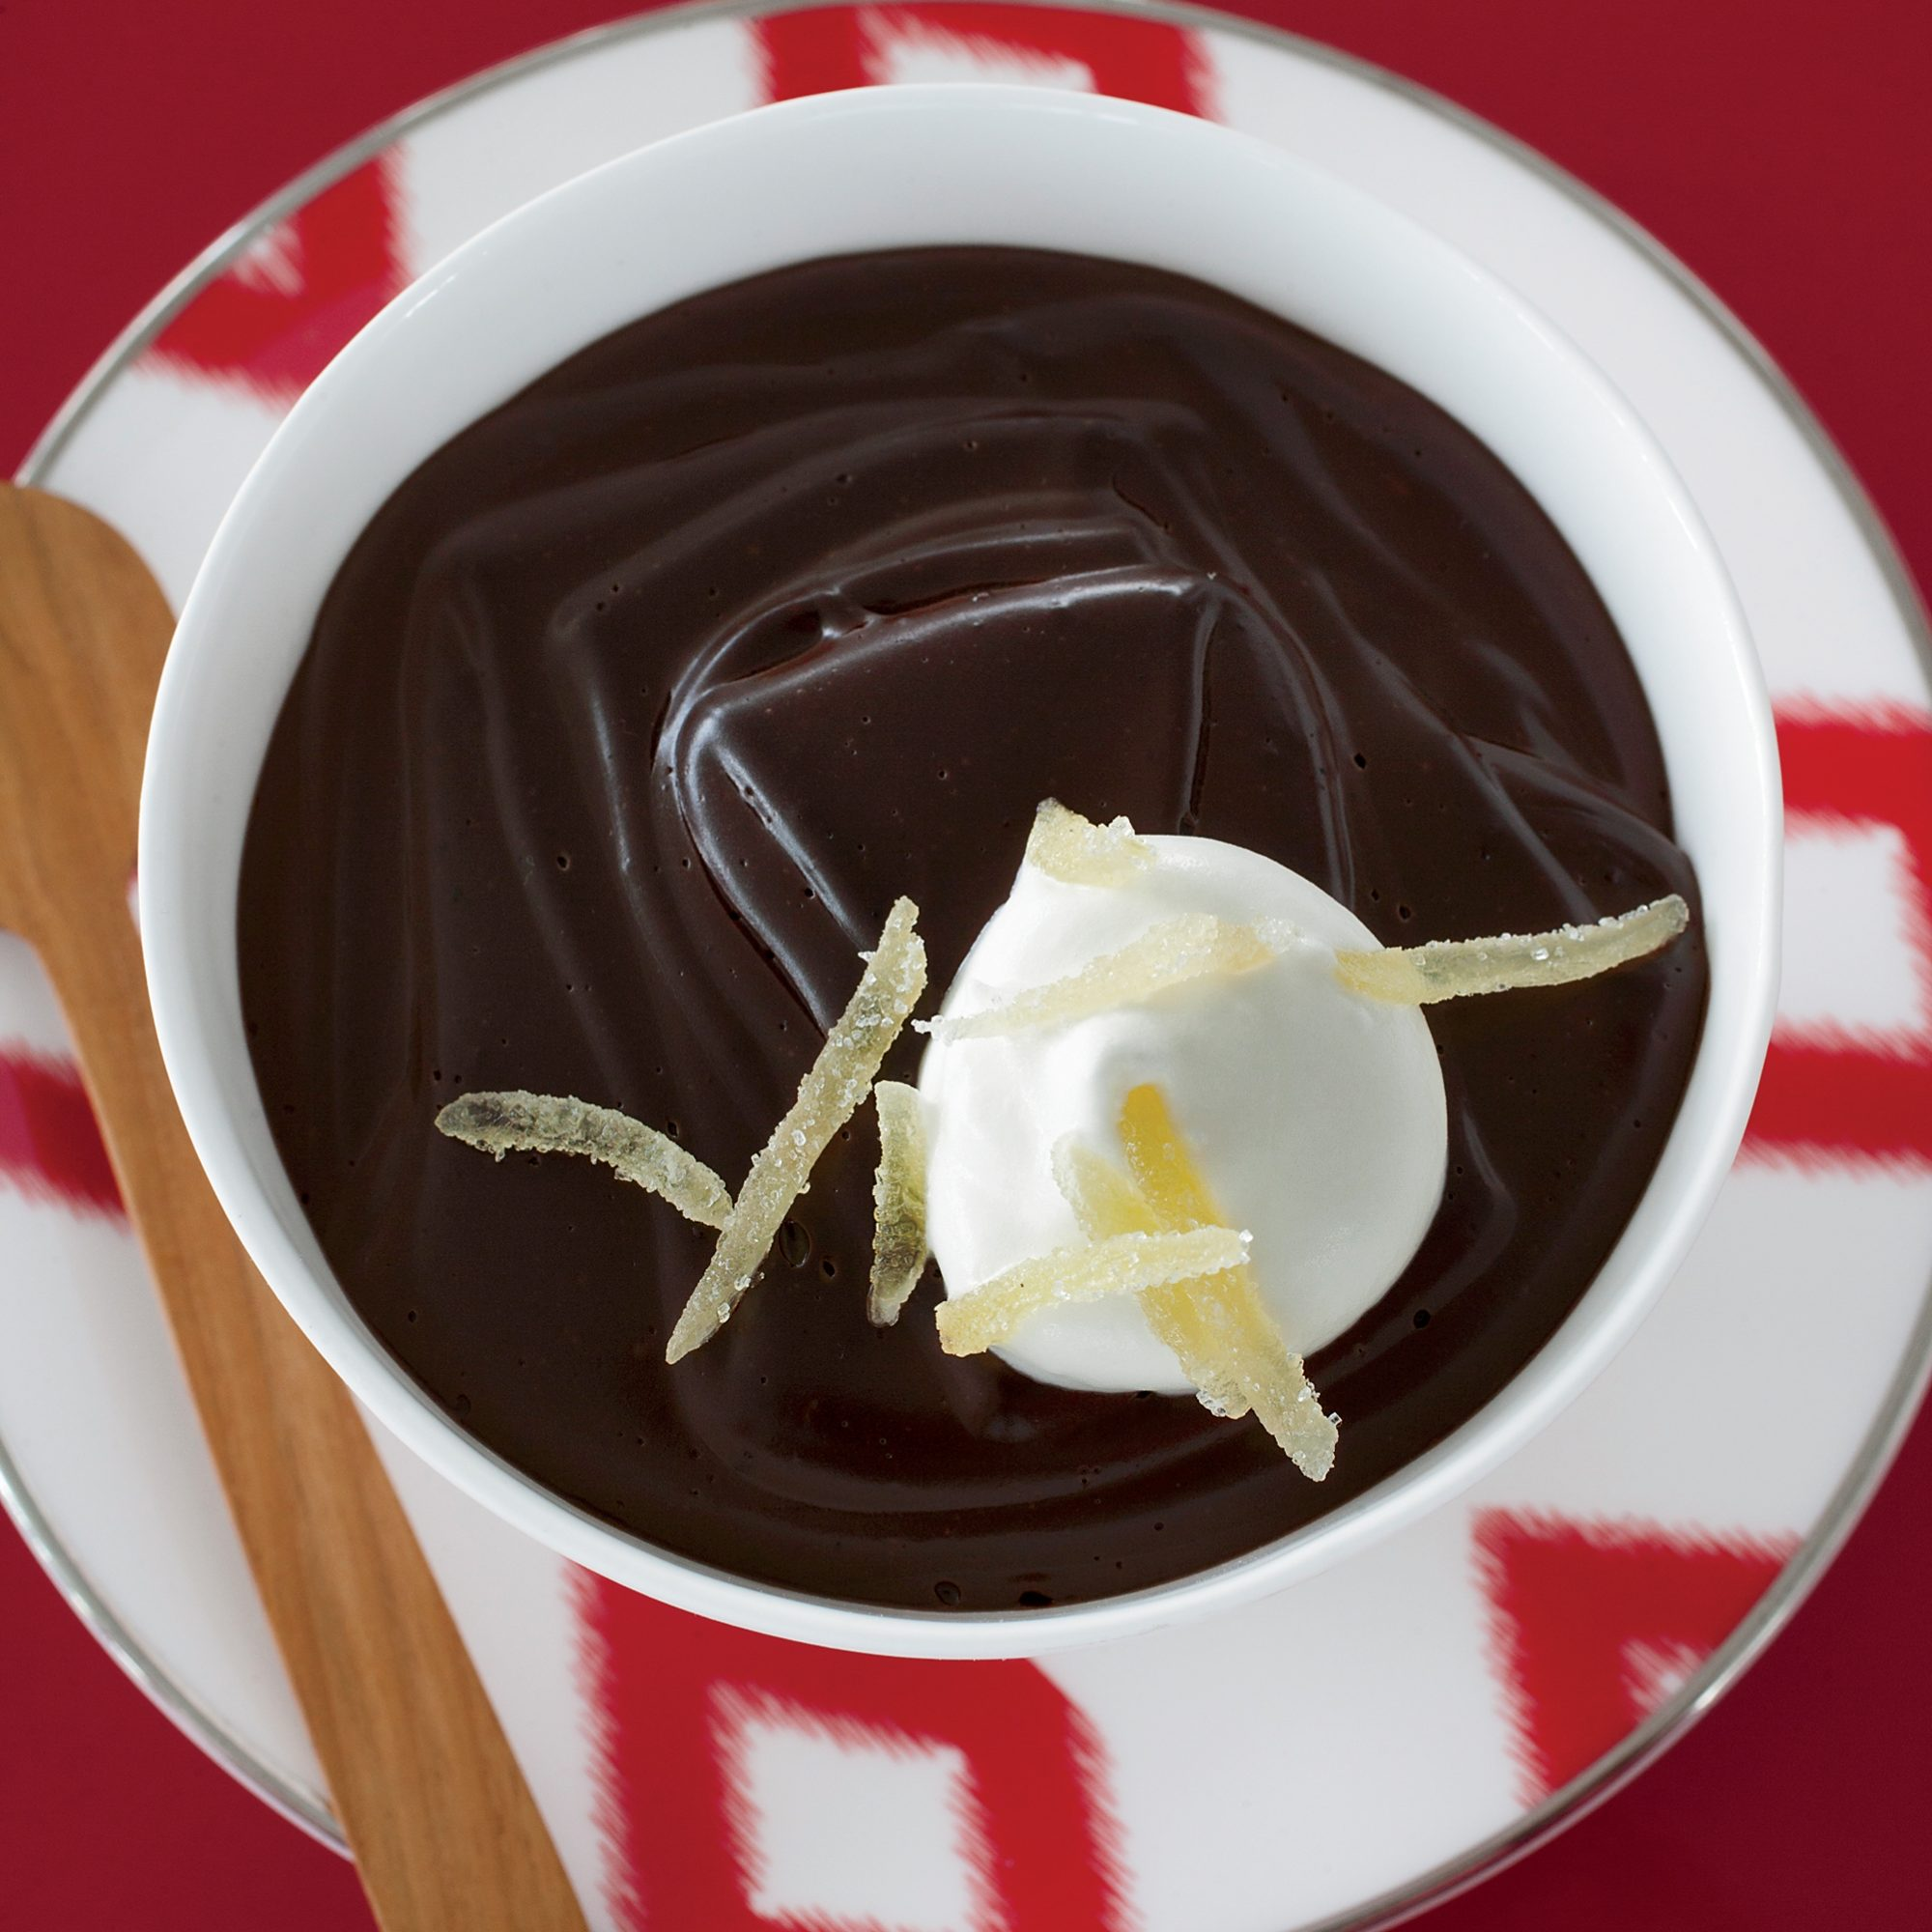 images-sys-201112-r-dark-chocolate-pudding-with-candied-ginger.jpg